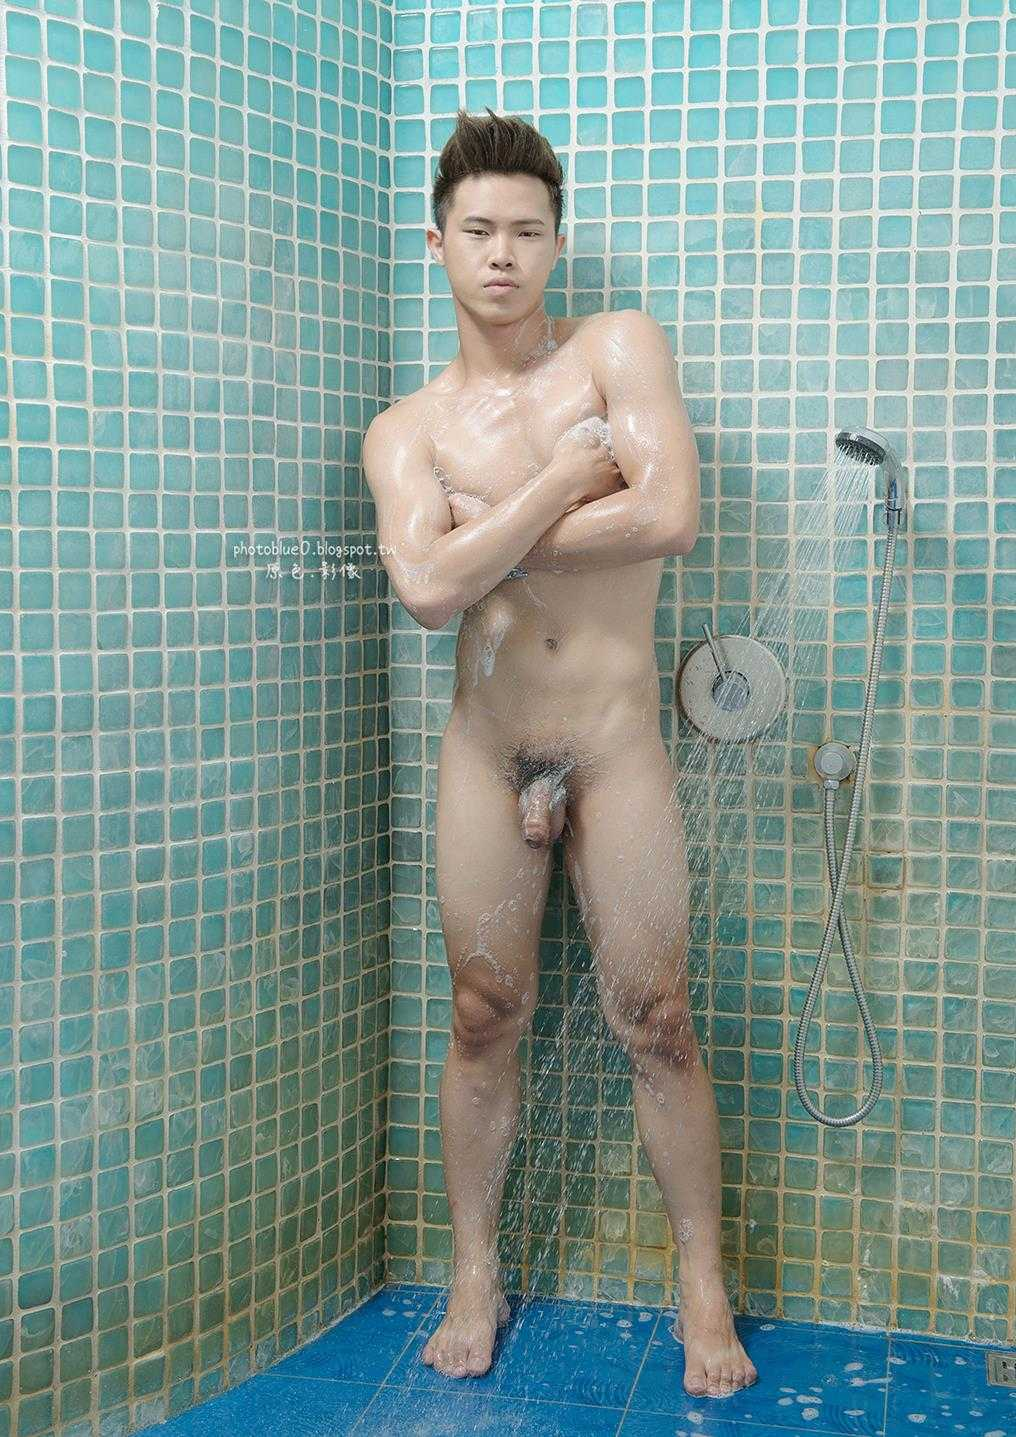 Pinoy hunk celebrity anal jerking off gay 7